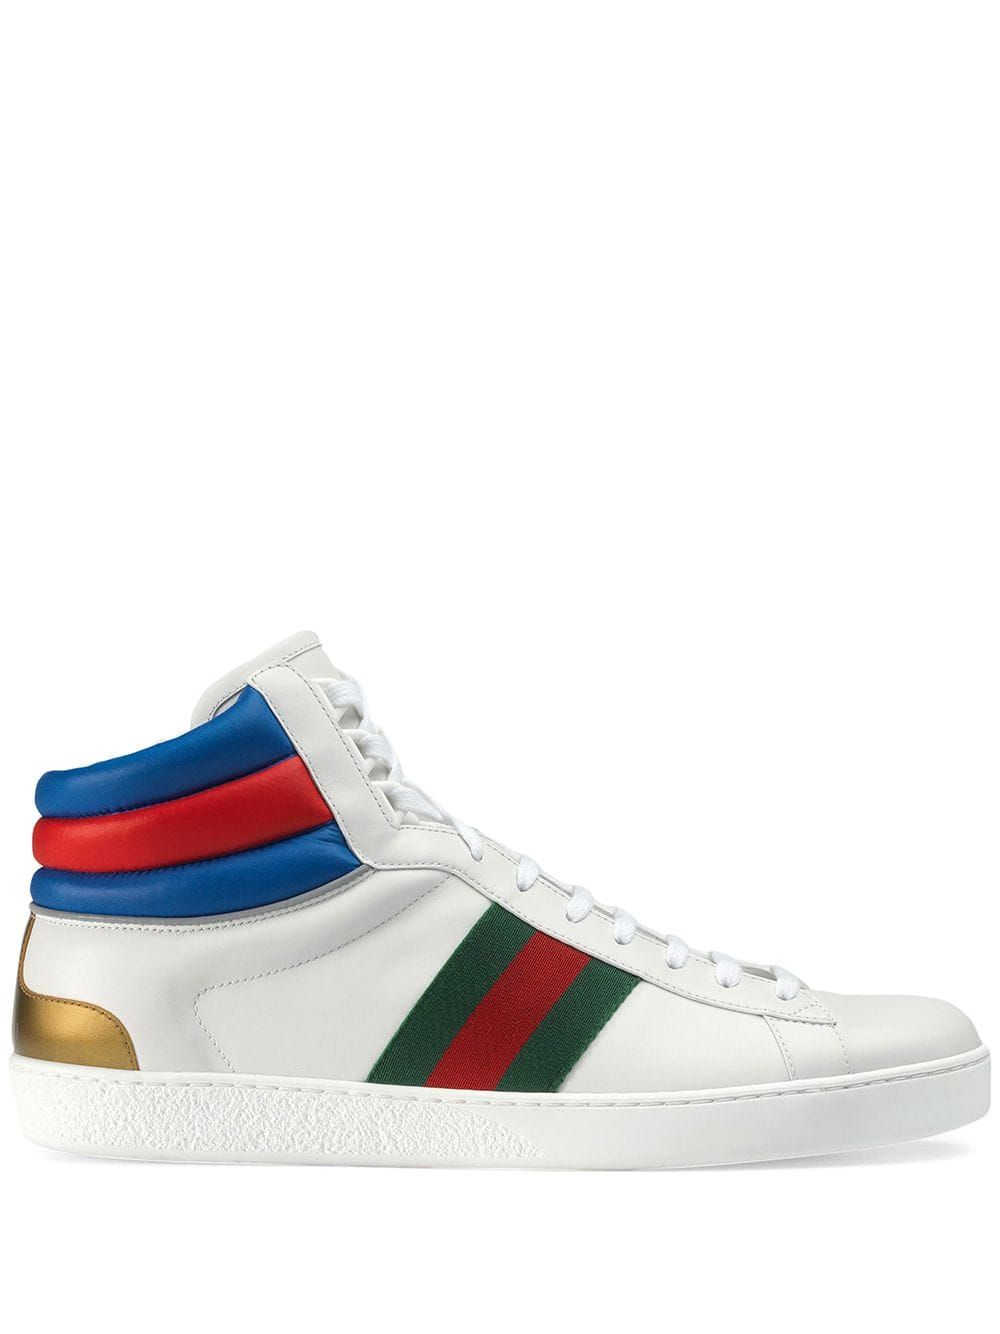 87ac0173090b6 GUCCI GUCCI ACE HIGH-TOP WHITE SNEAKERS.  gucci  shoes